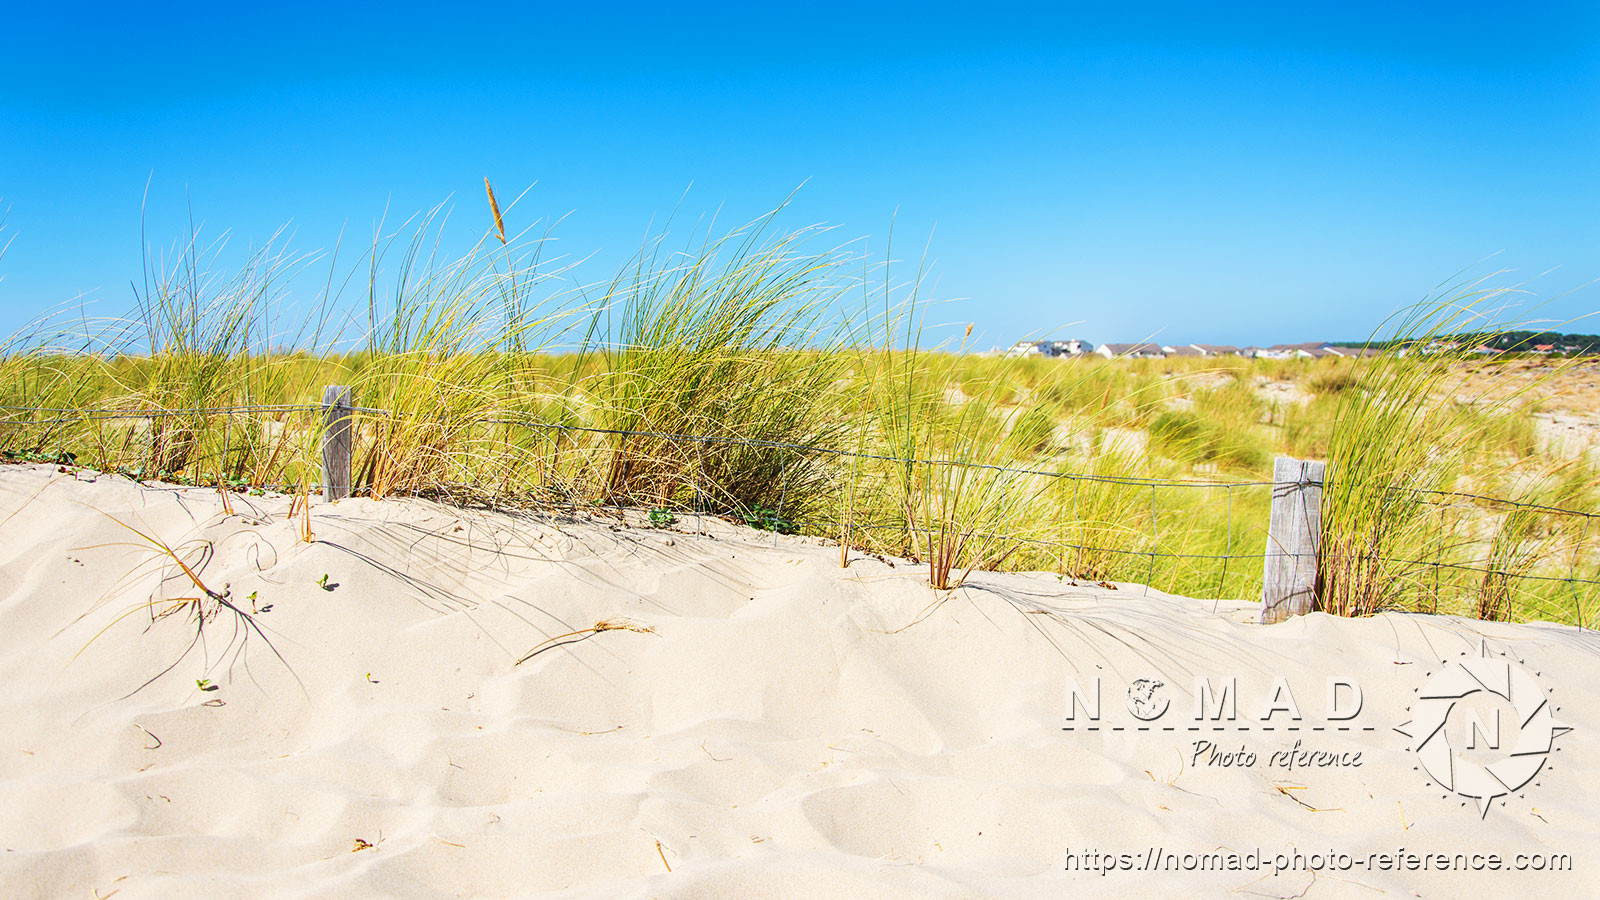 Psd photo reference pack sand dunes 9